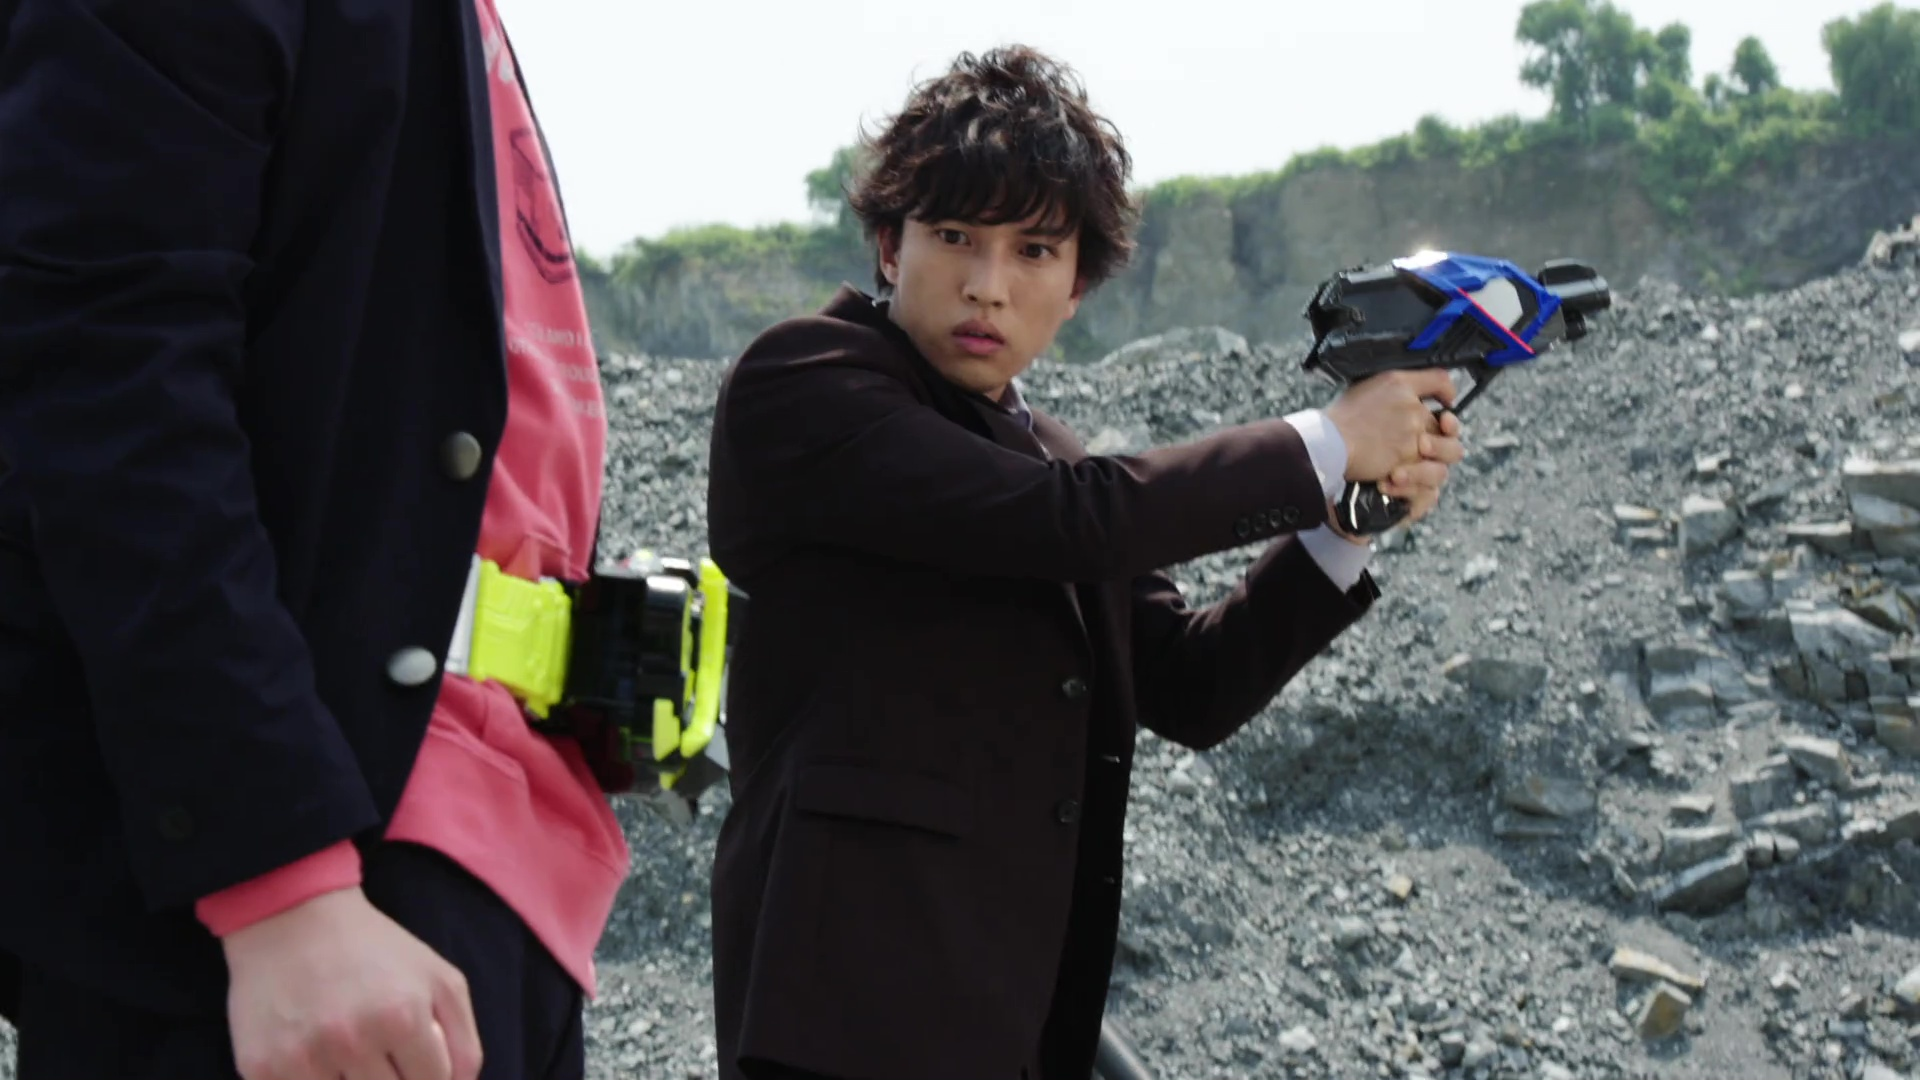 Kamen Rider Zero One Episode 4 Recap